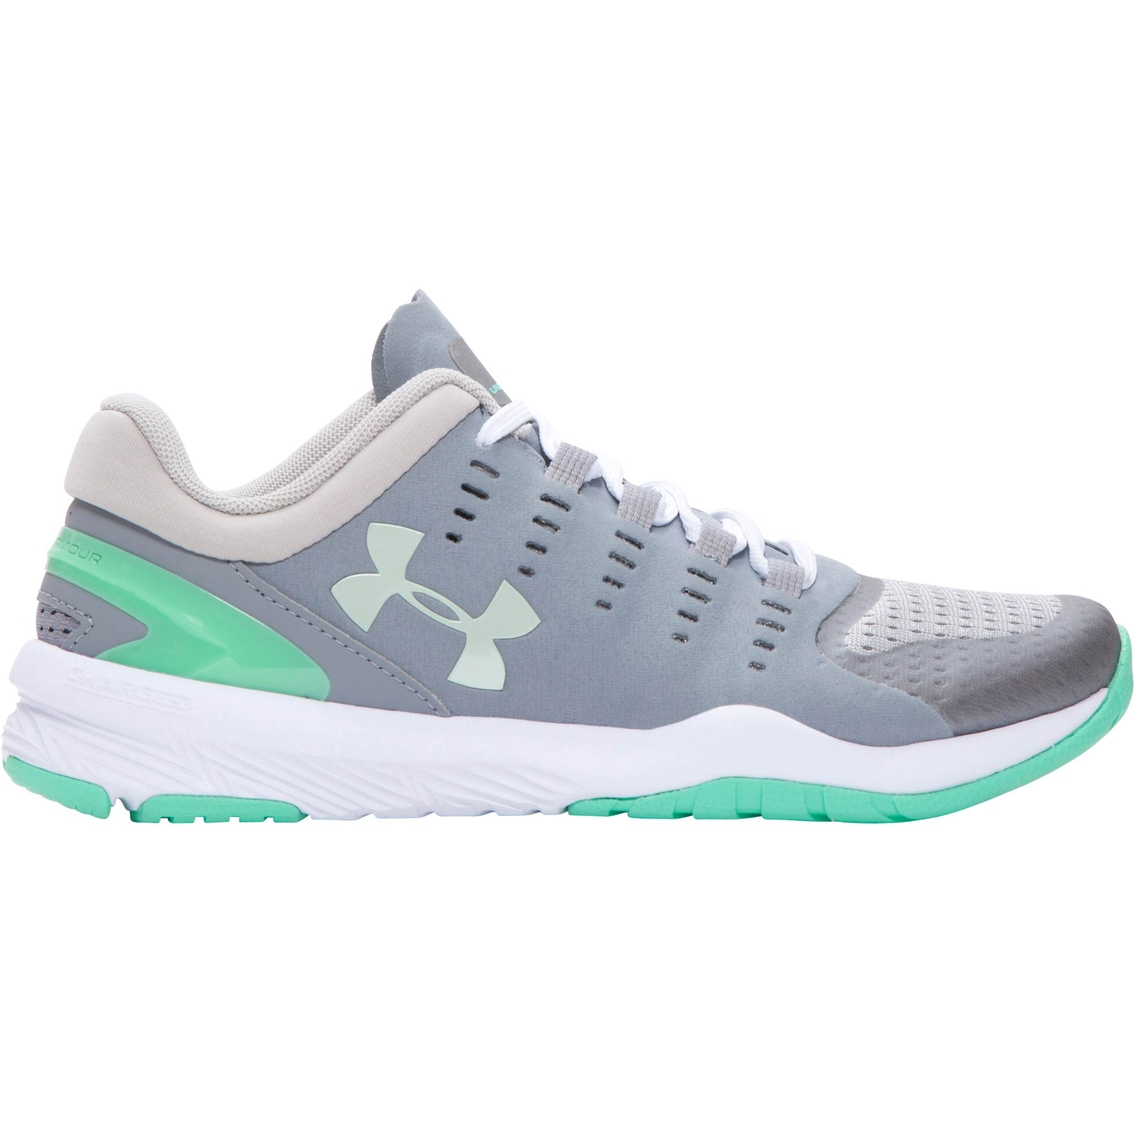 d69ca4b54985 Under Armour Women s Charged Stunner Training Shoes